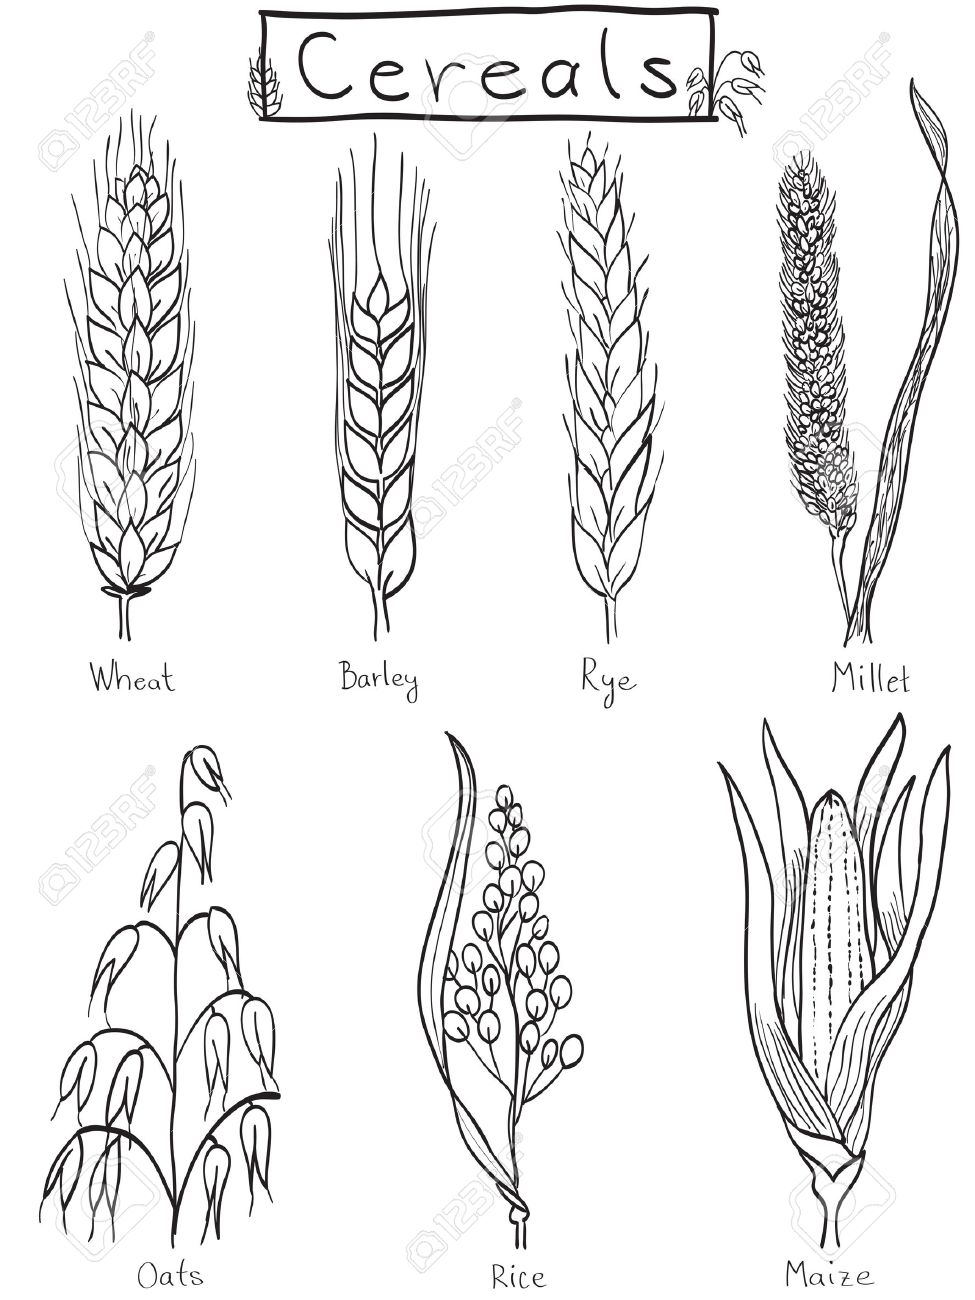 hight resolution of cereals hand drawn illustration wheat barley rye millet oat